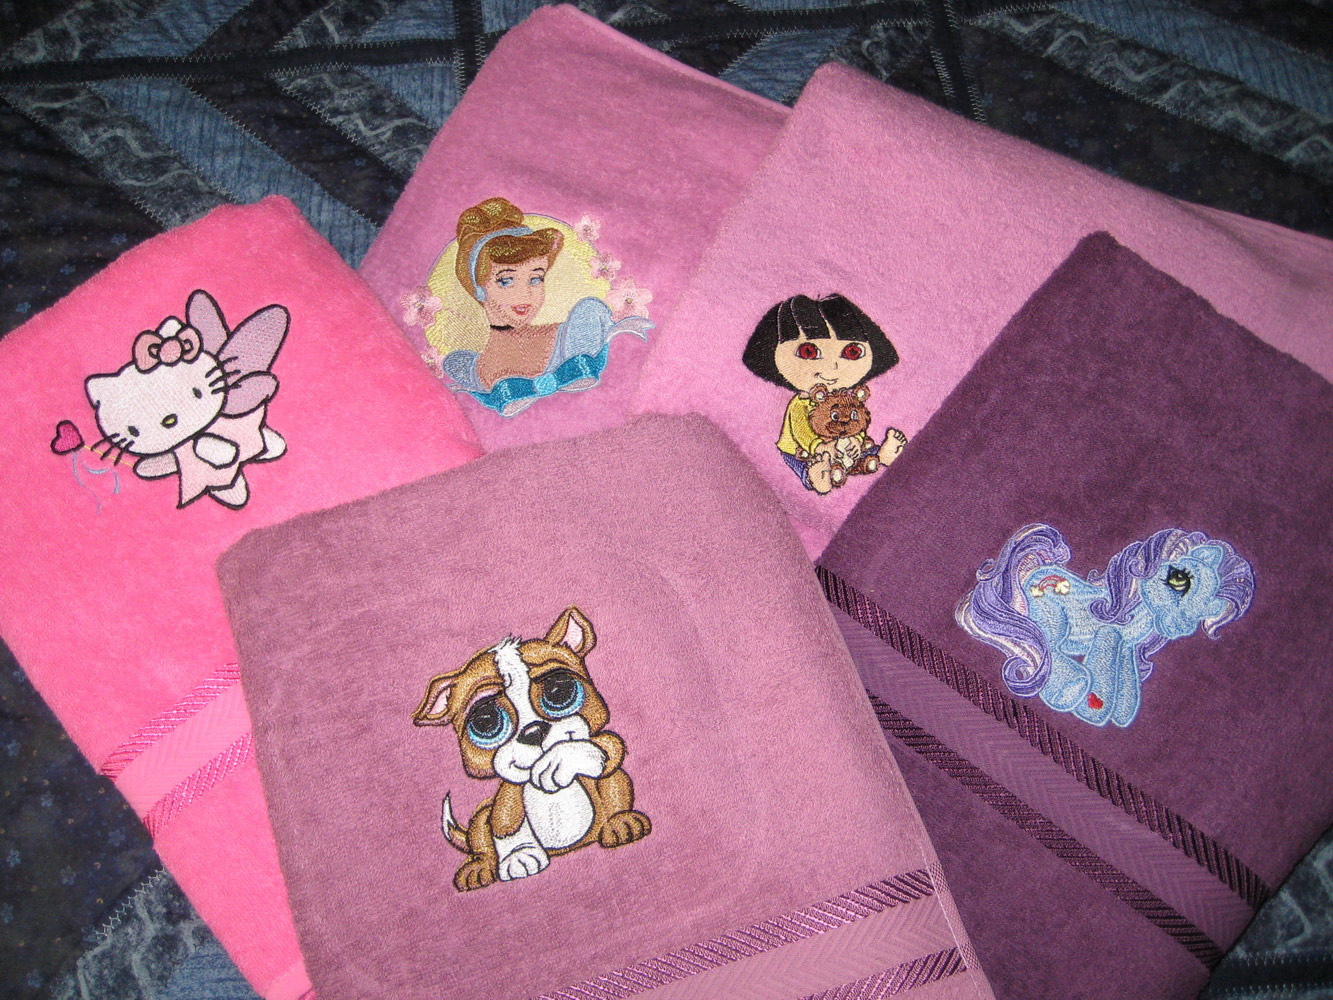 Girl's favorite cartoon heroes embroidered on towels